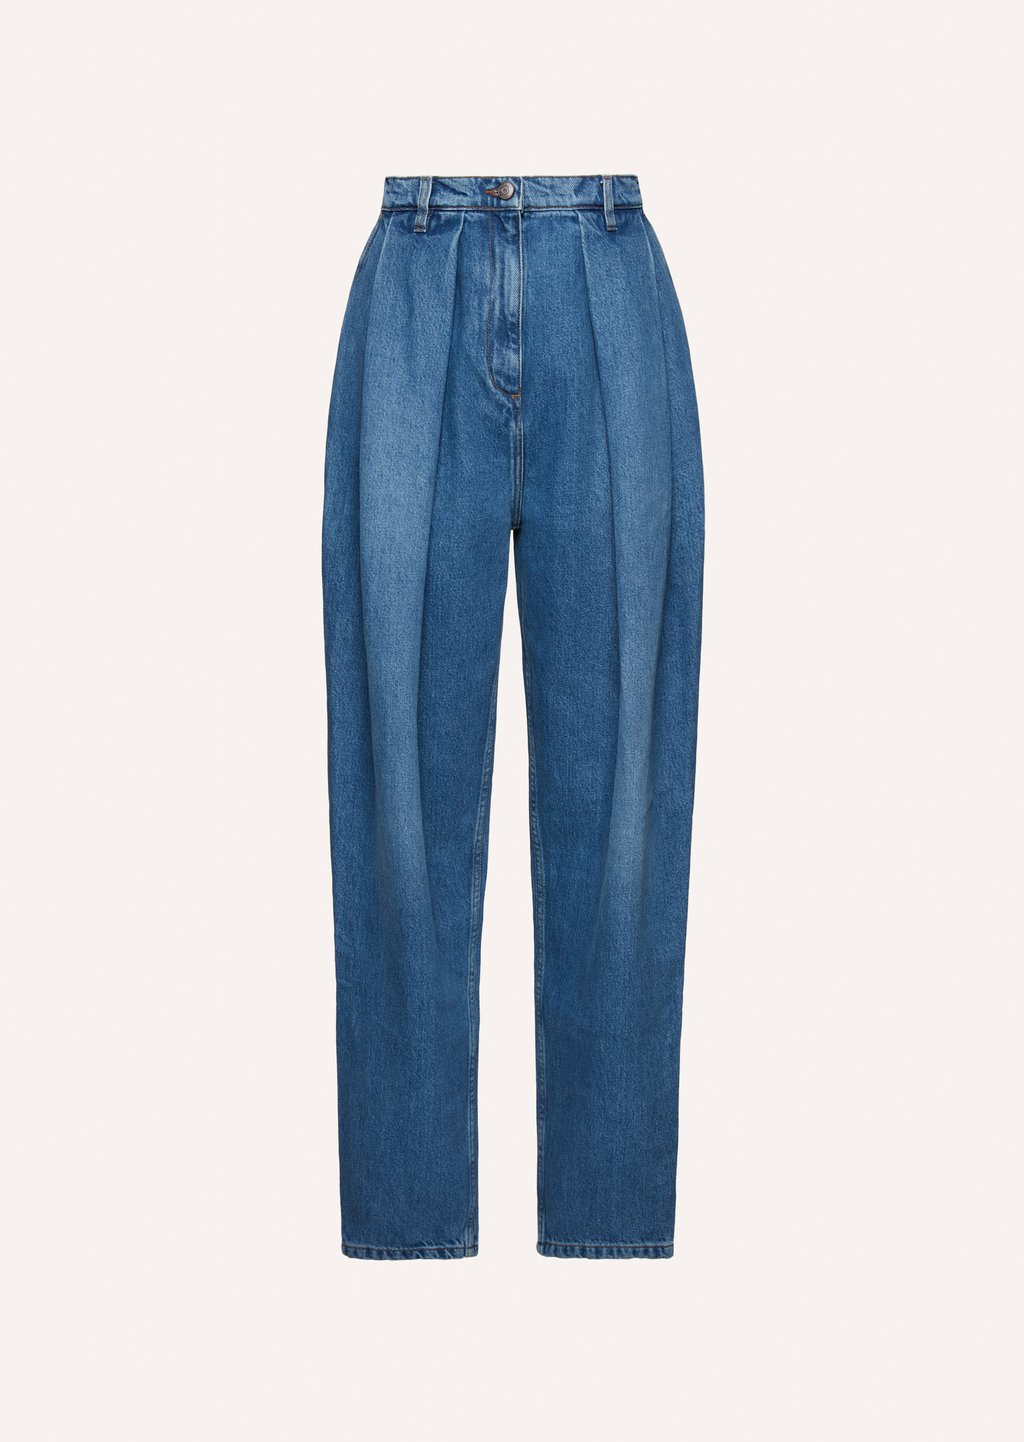 Tapered denim pant in classic blue by Magda Butrym, available on magdabutrym.com for $425 Elsa Hosk Pants Exact Product